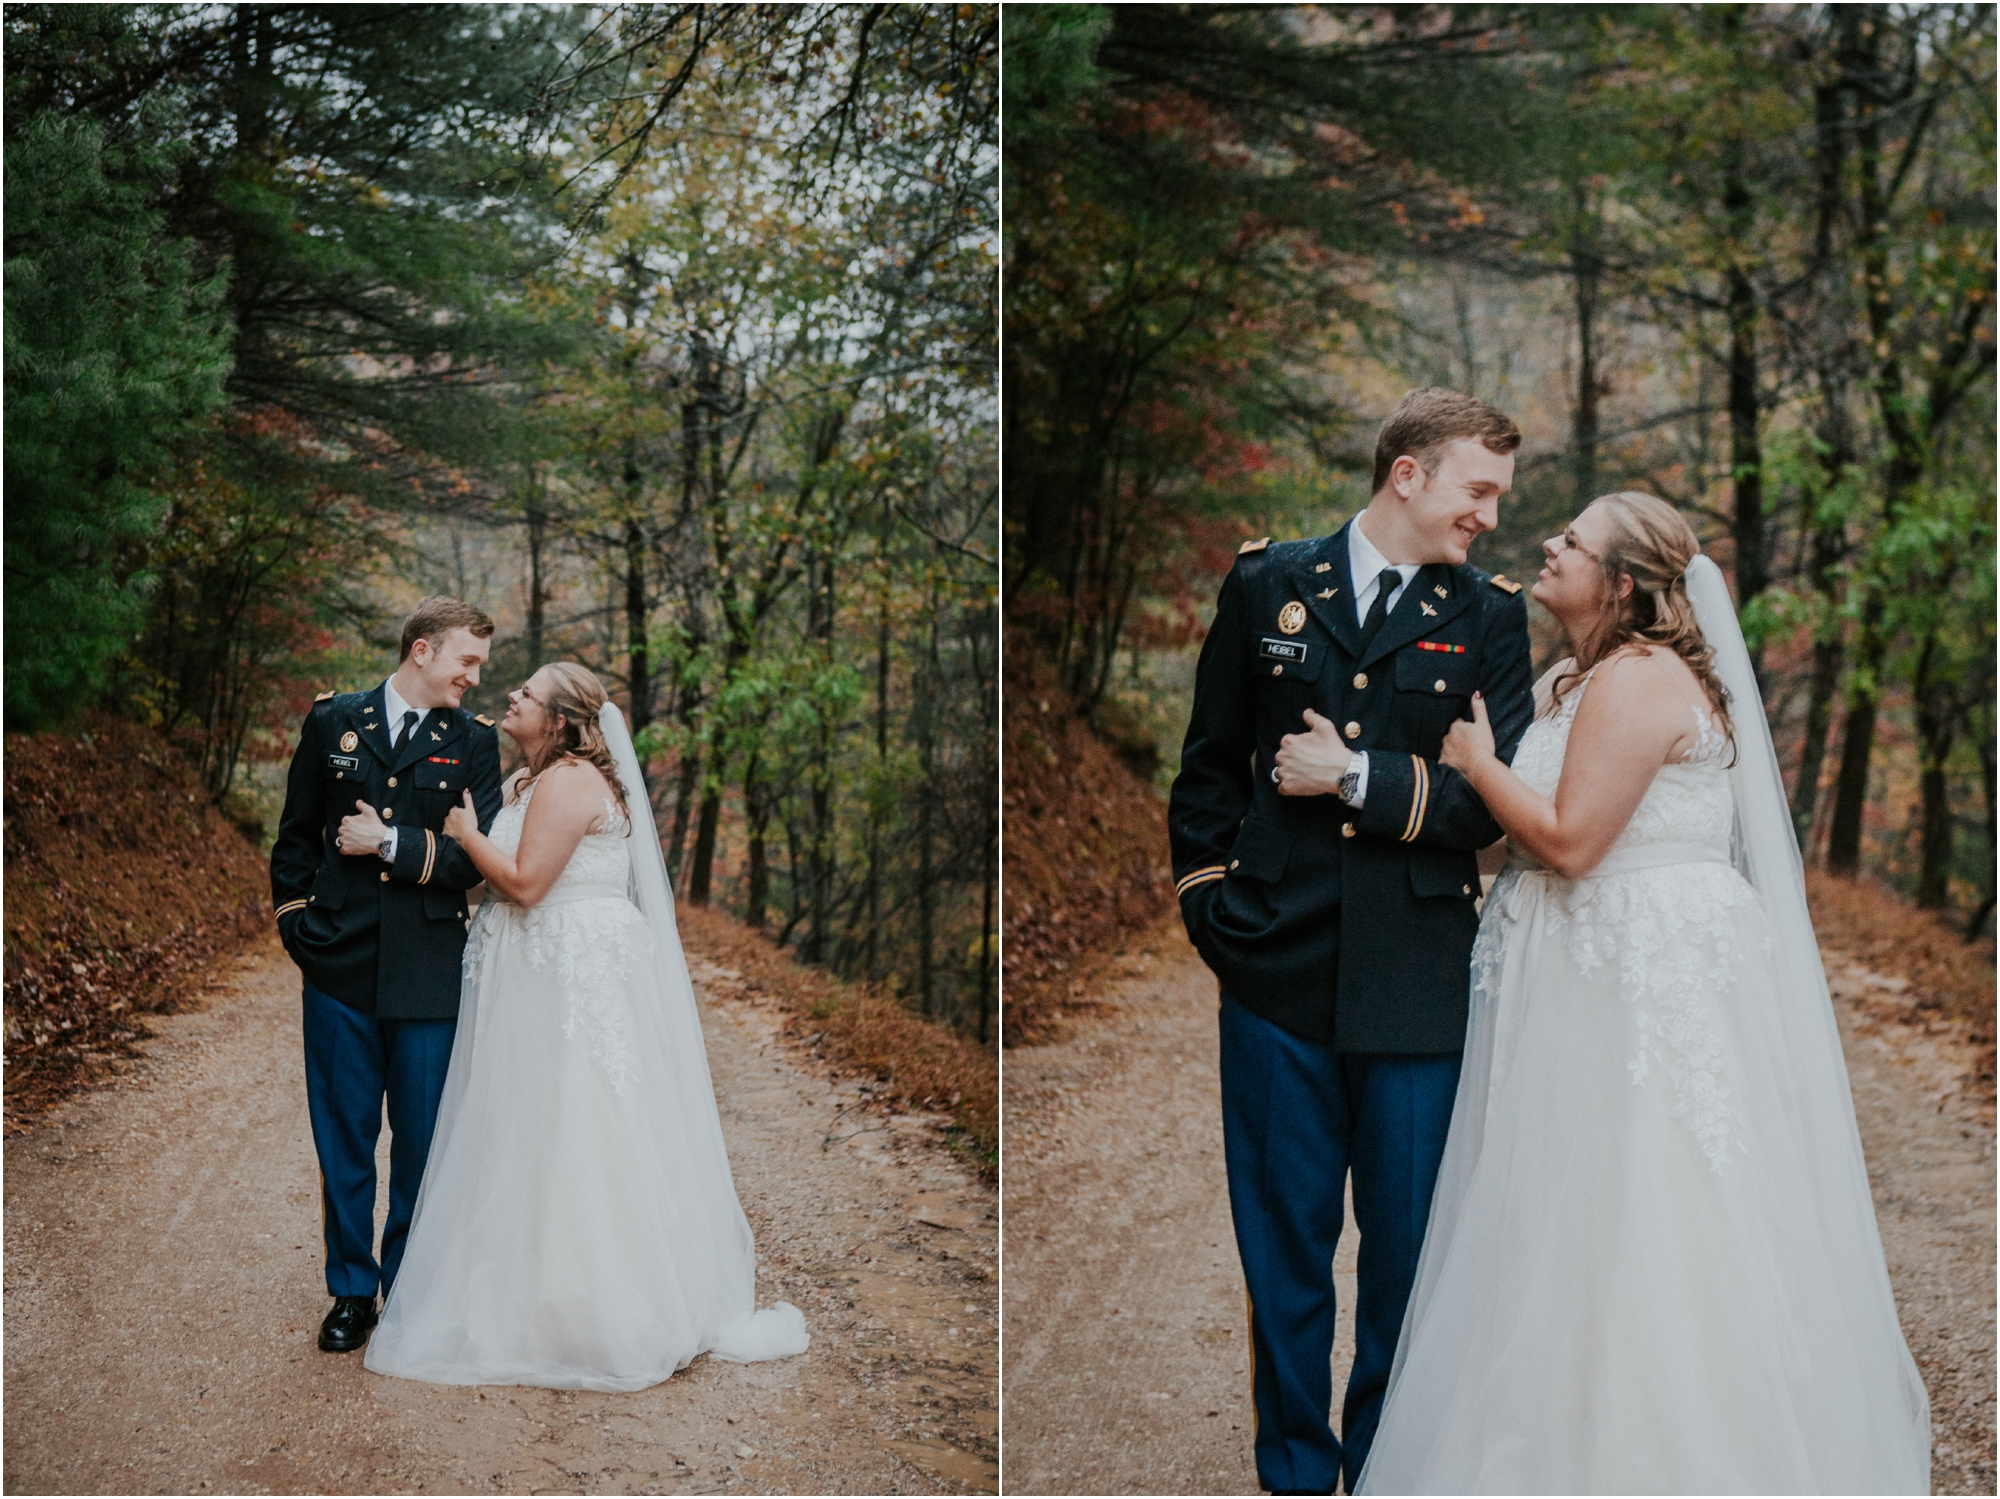 Sugar-Hollow-Retreat-Butler-Elizabethton-Tennessee-Rustic-Rainy-Wedding-Adventurous-Couple_0116.jpg